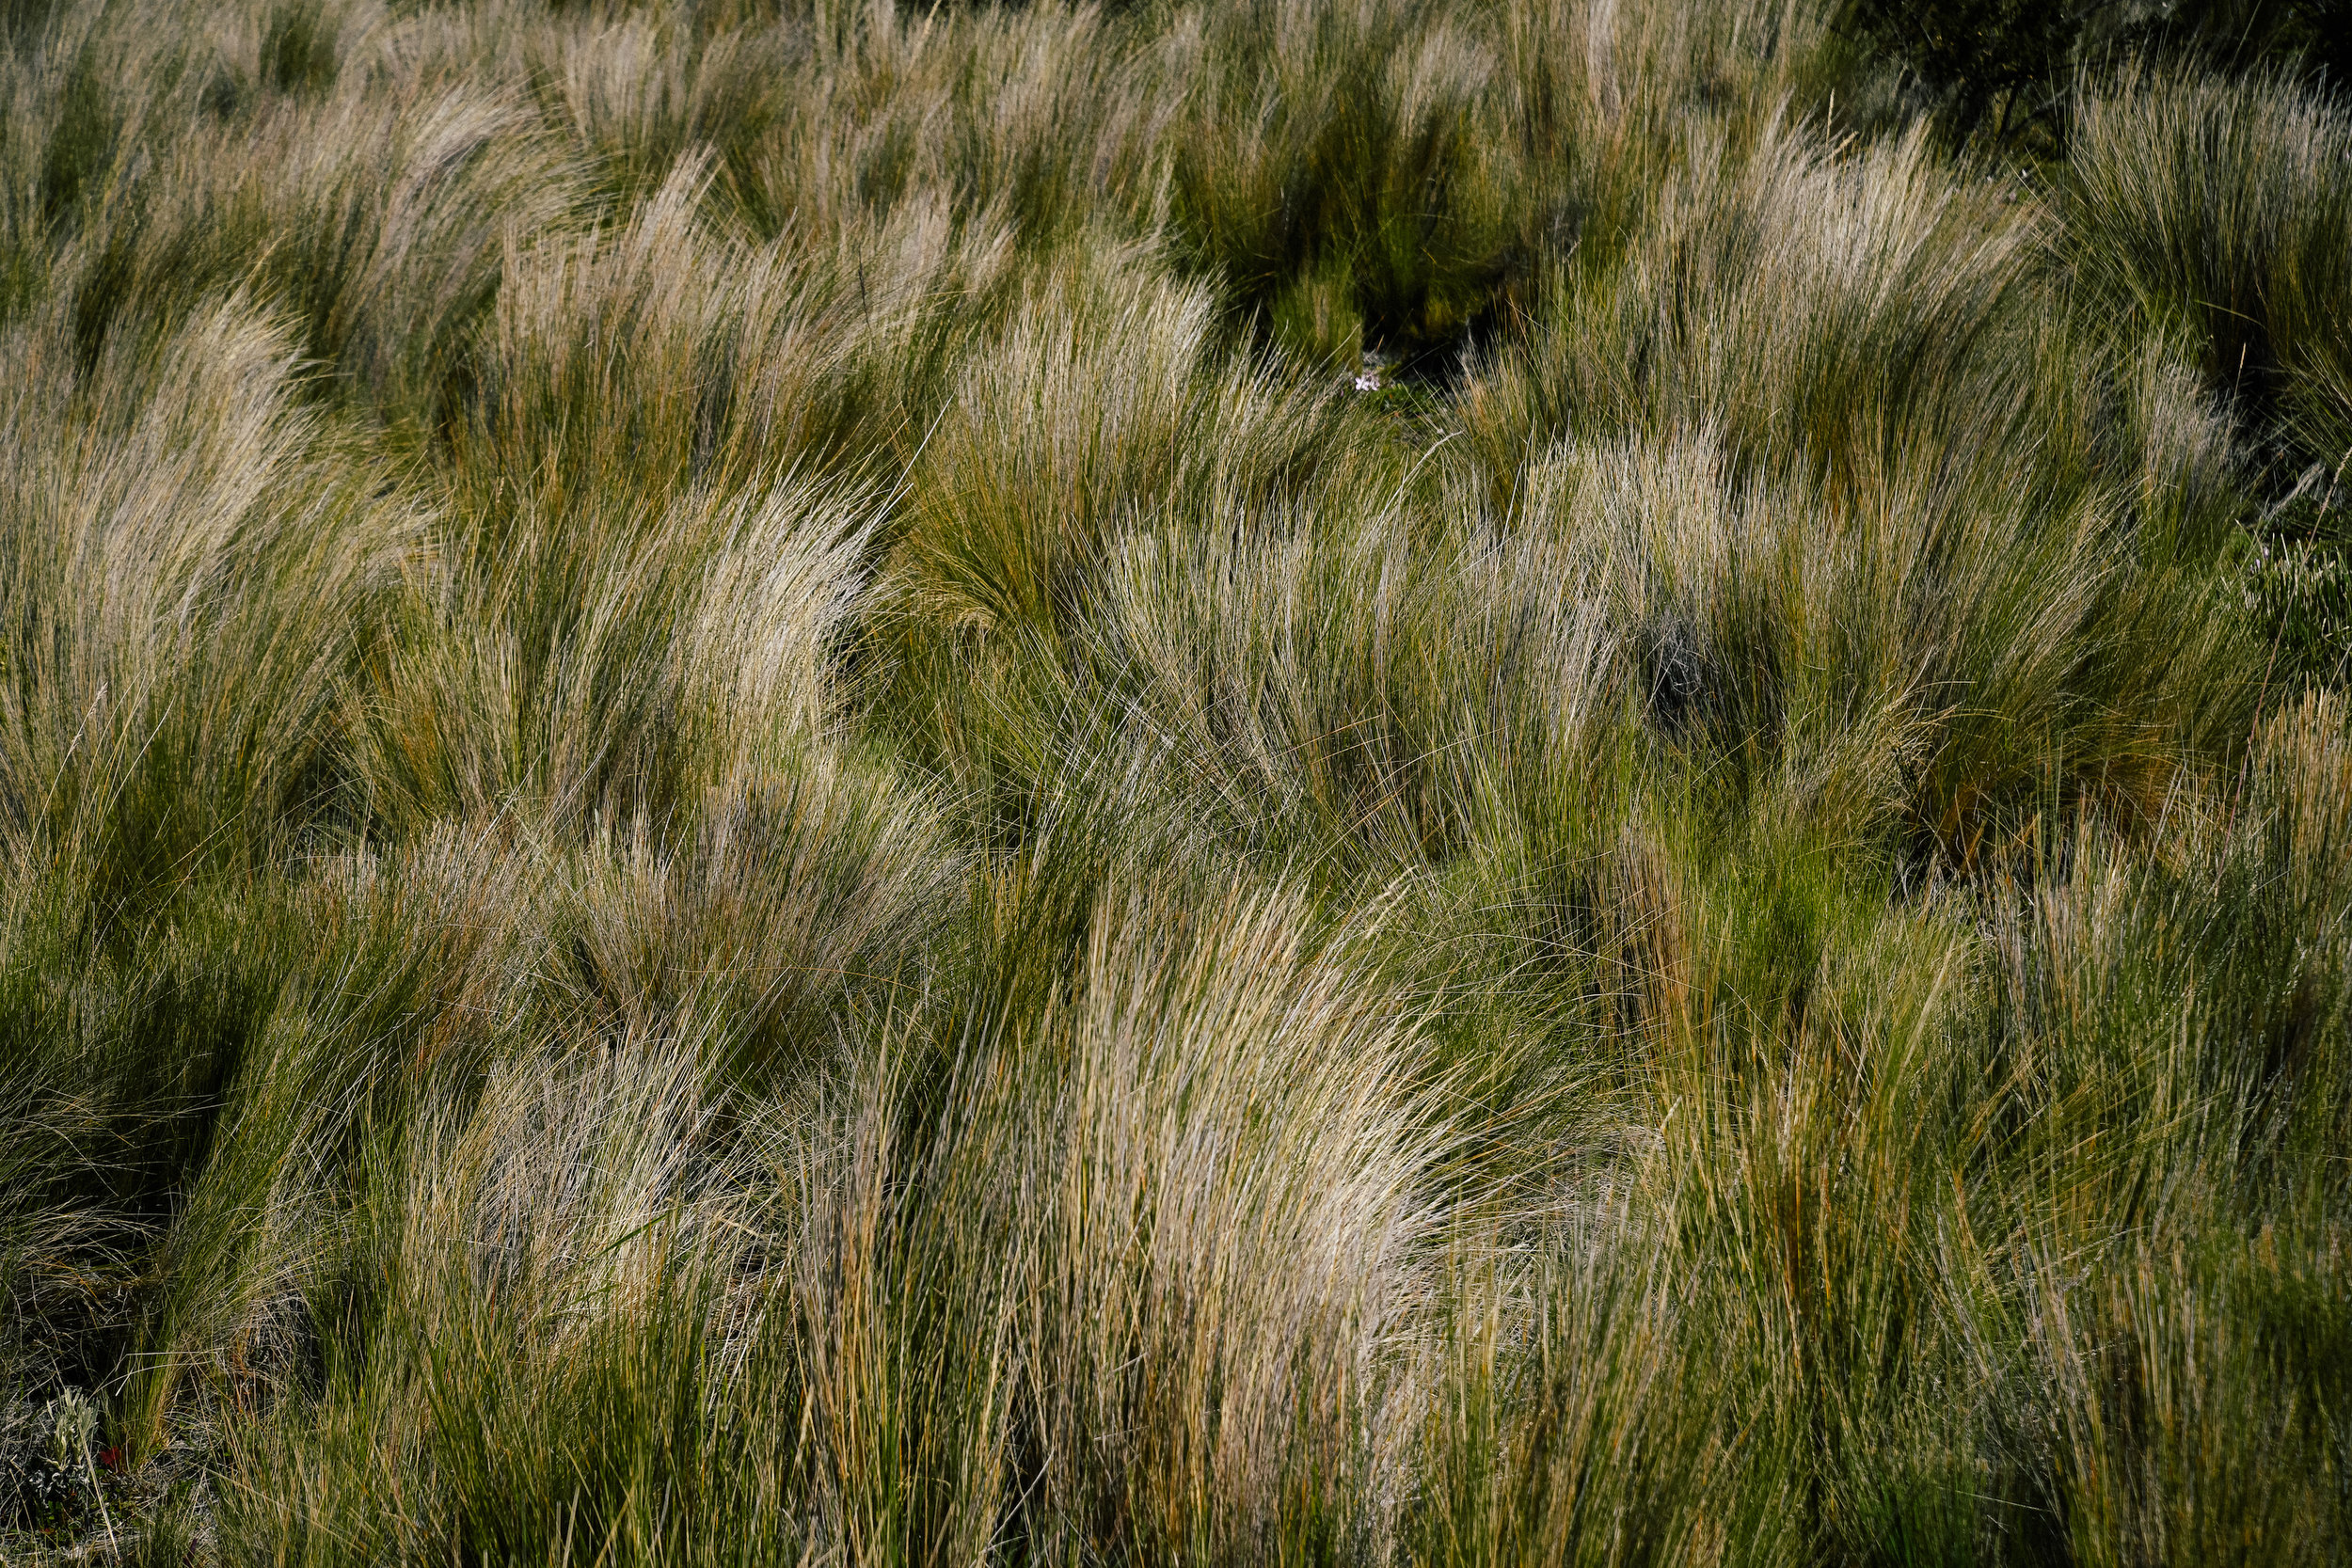 grass detail in cotopaxi national park